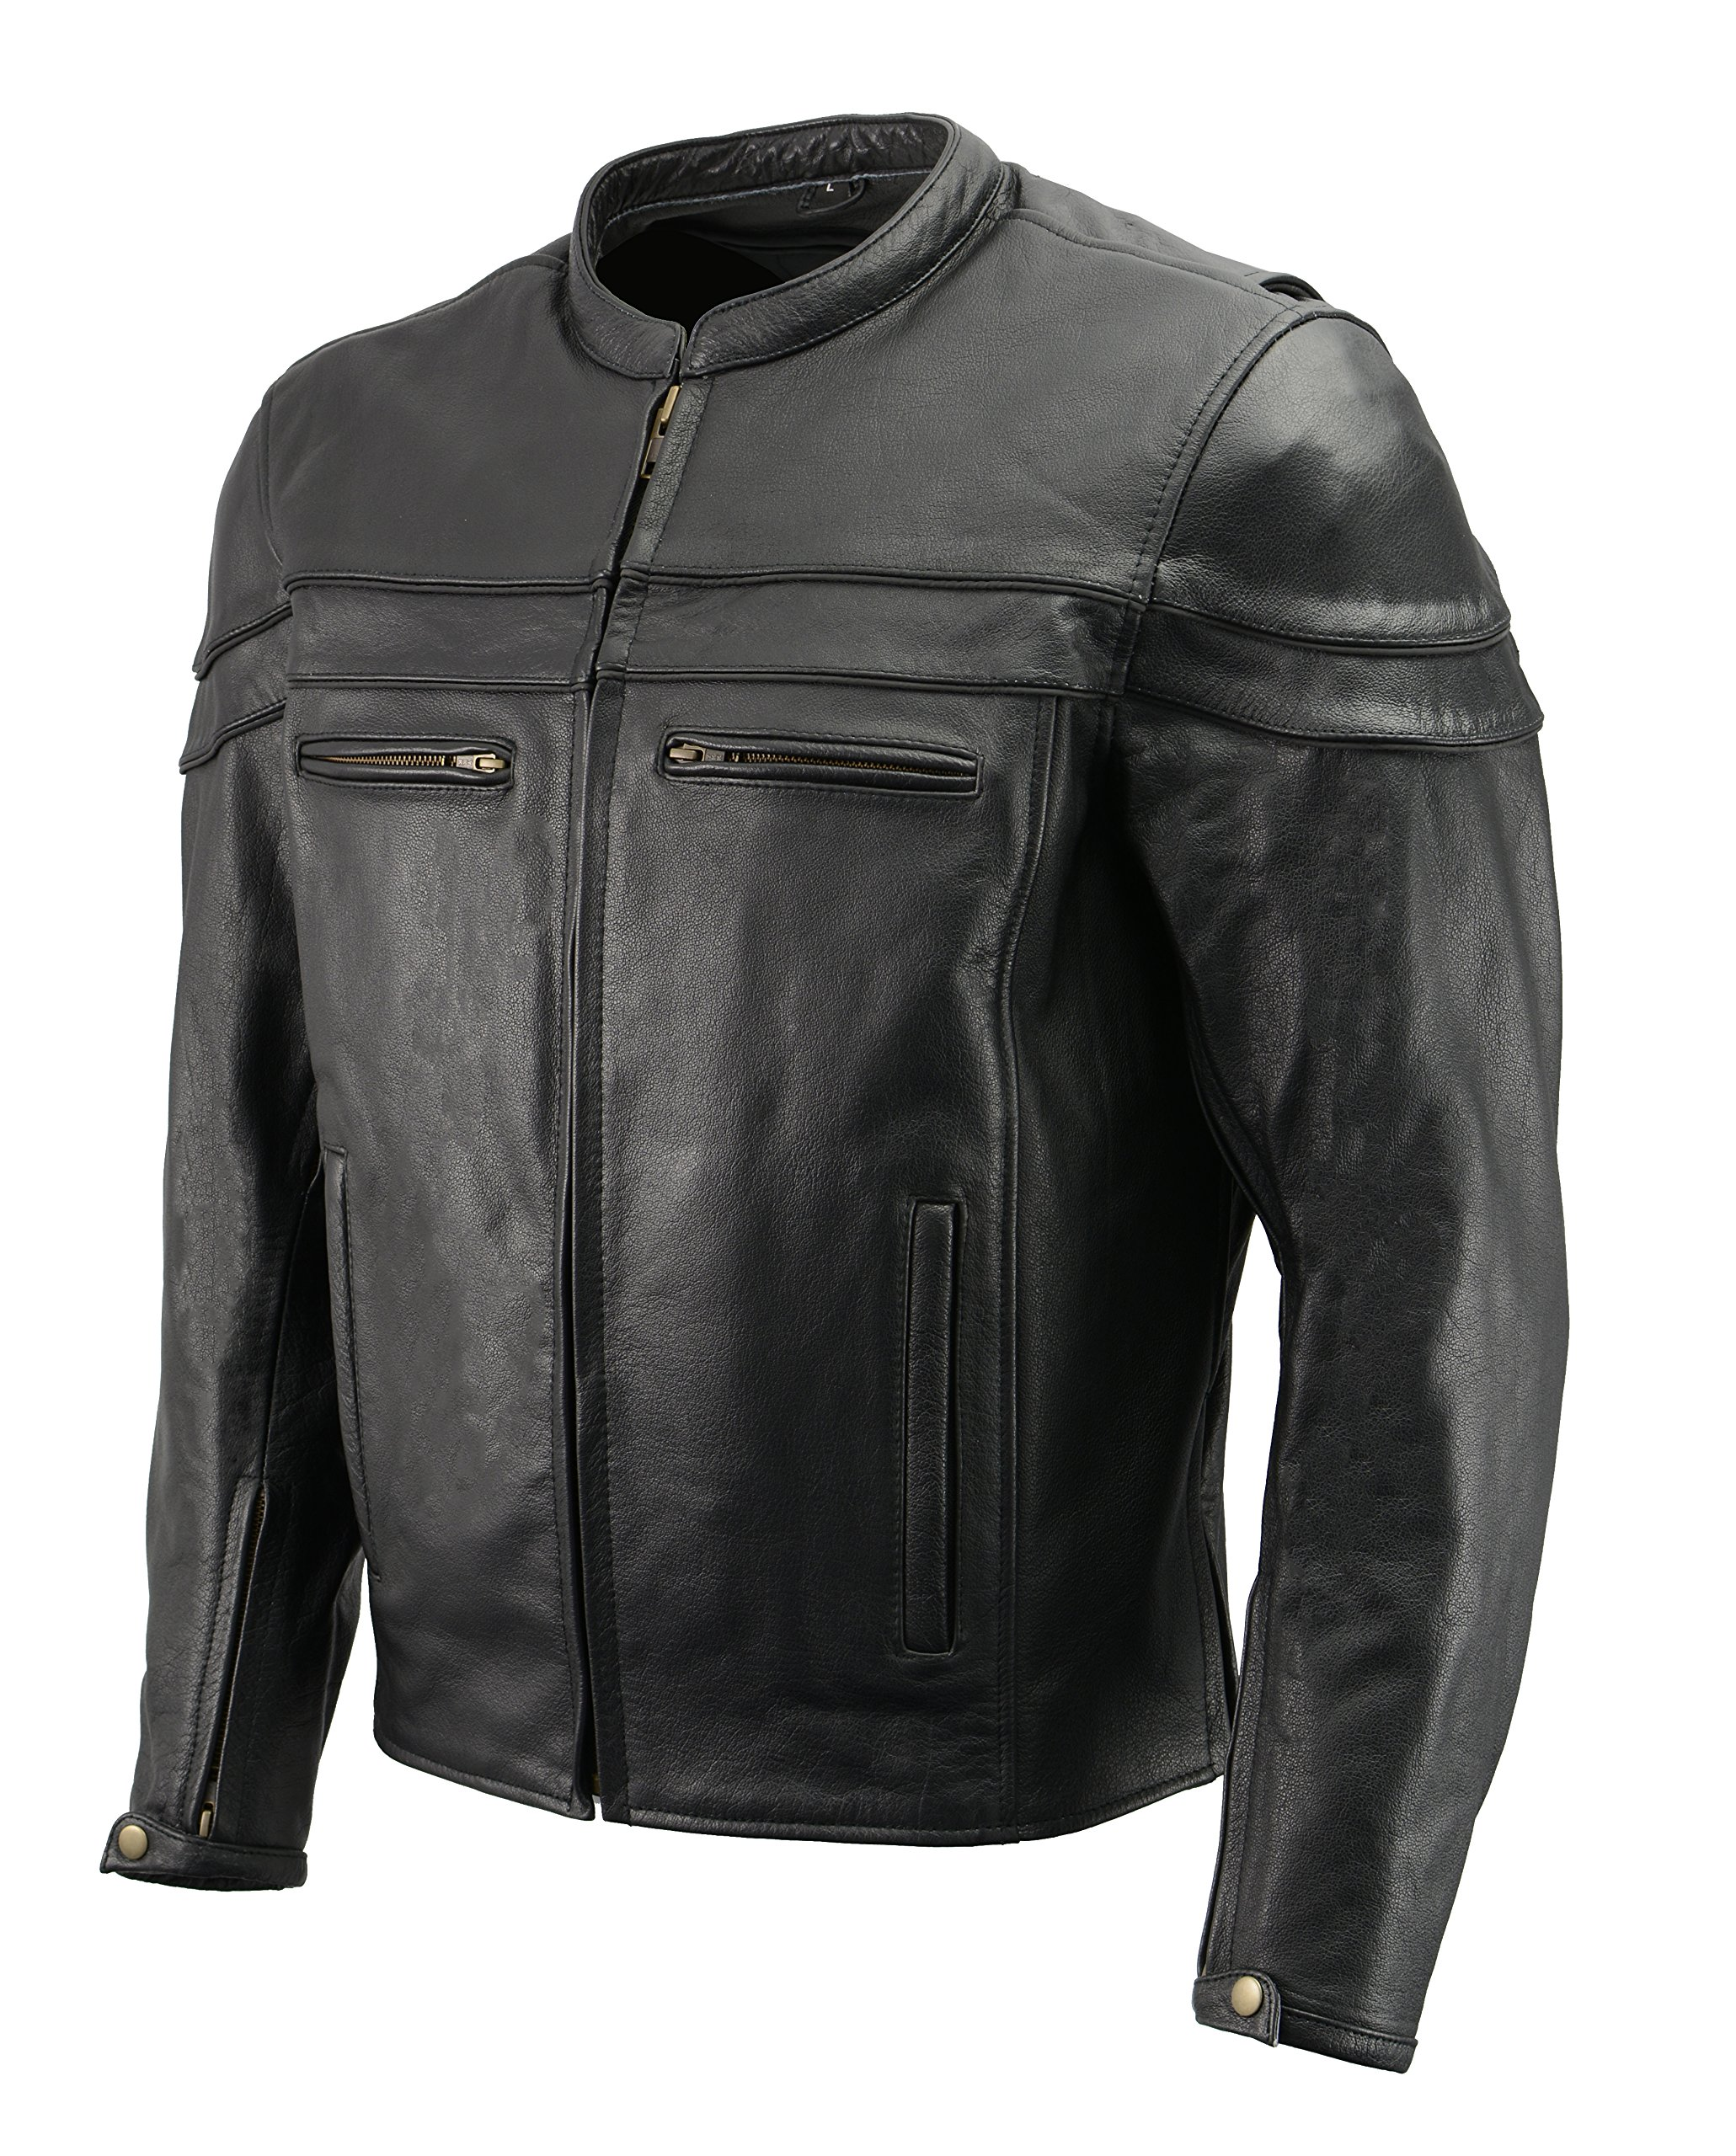 Men's Leather Crossover Scooter Jacket w/Removable CE Armor | Premium Natural Buffalo Leather | Concealed Gun Pockets, Vented Motorcycle Jacket (Black, 5X)